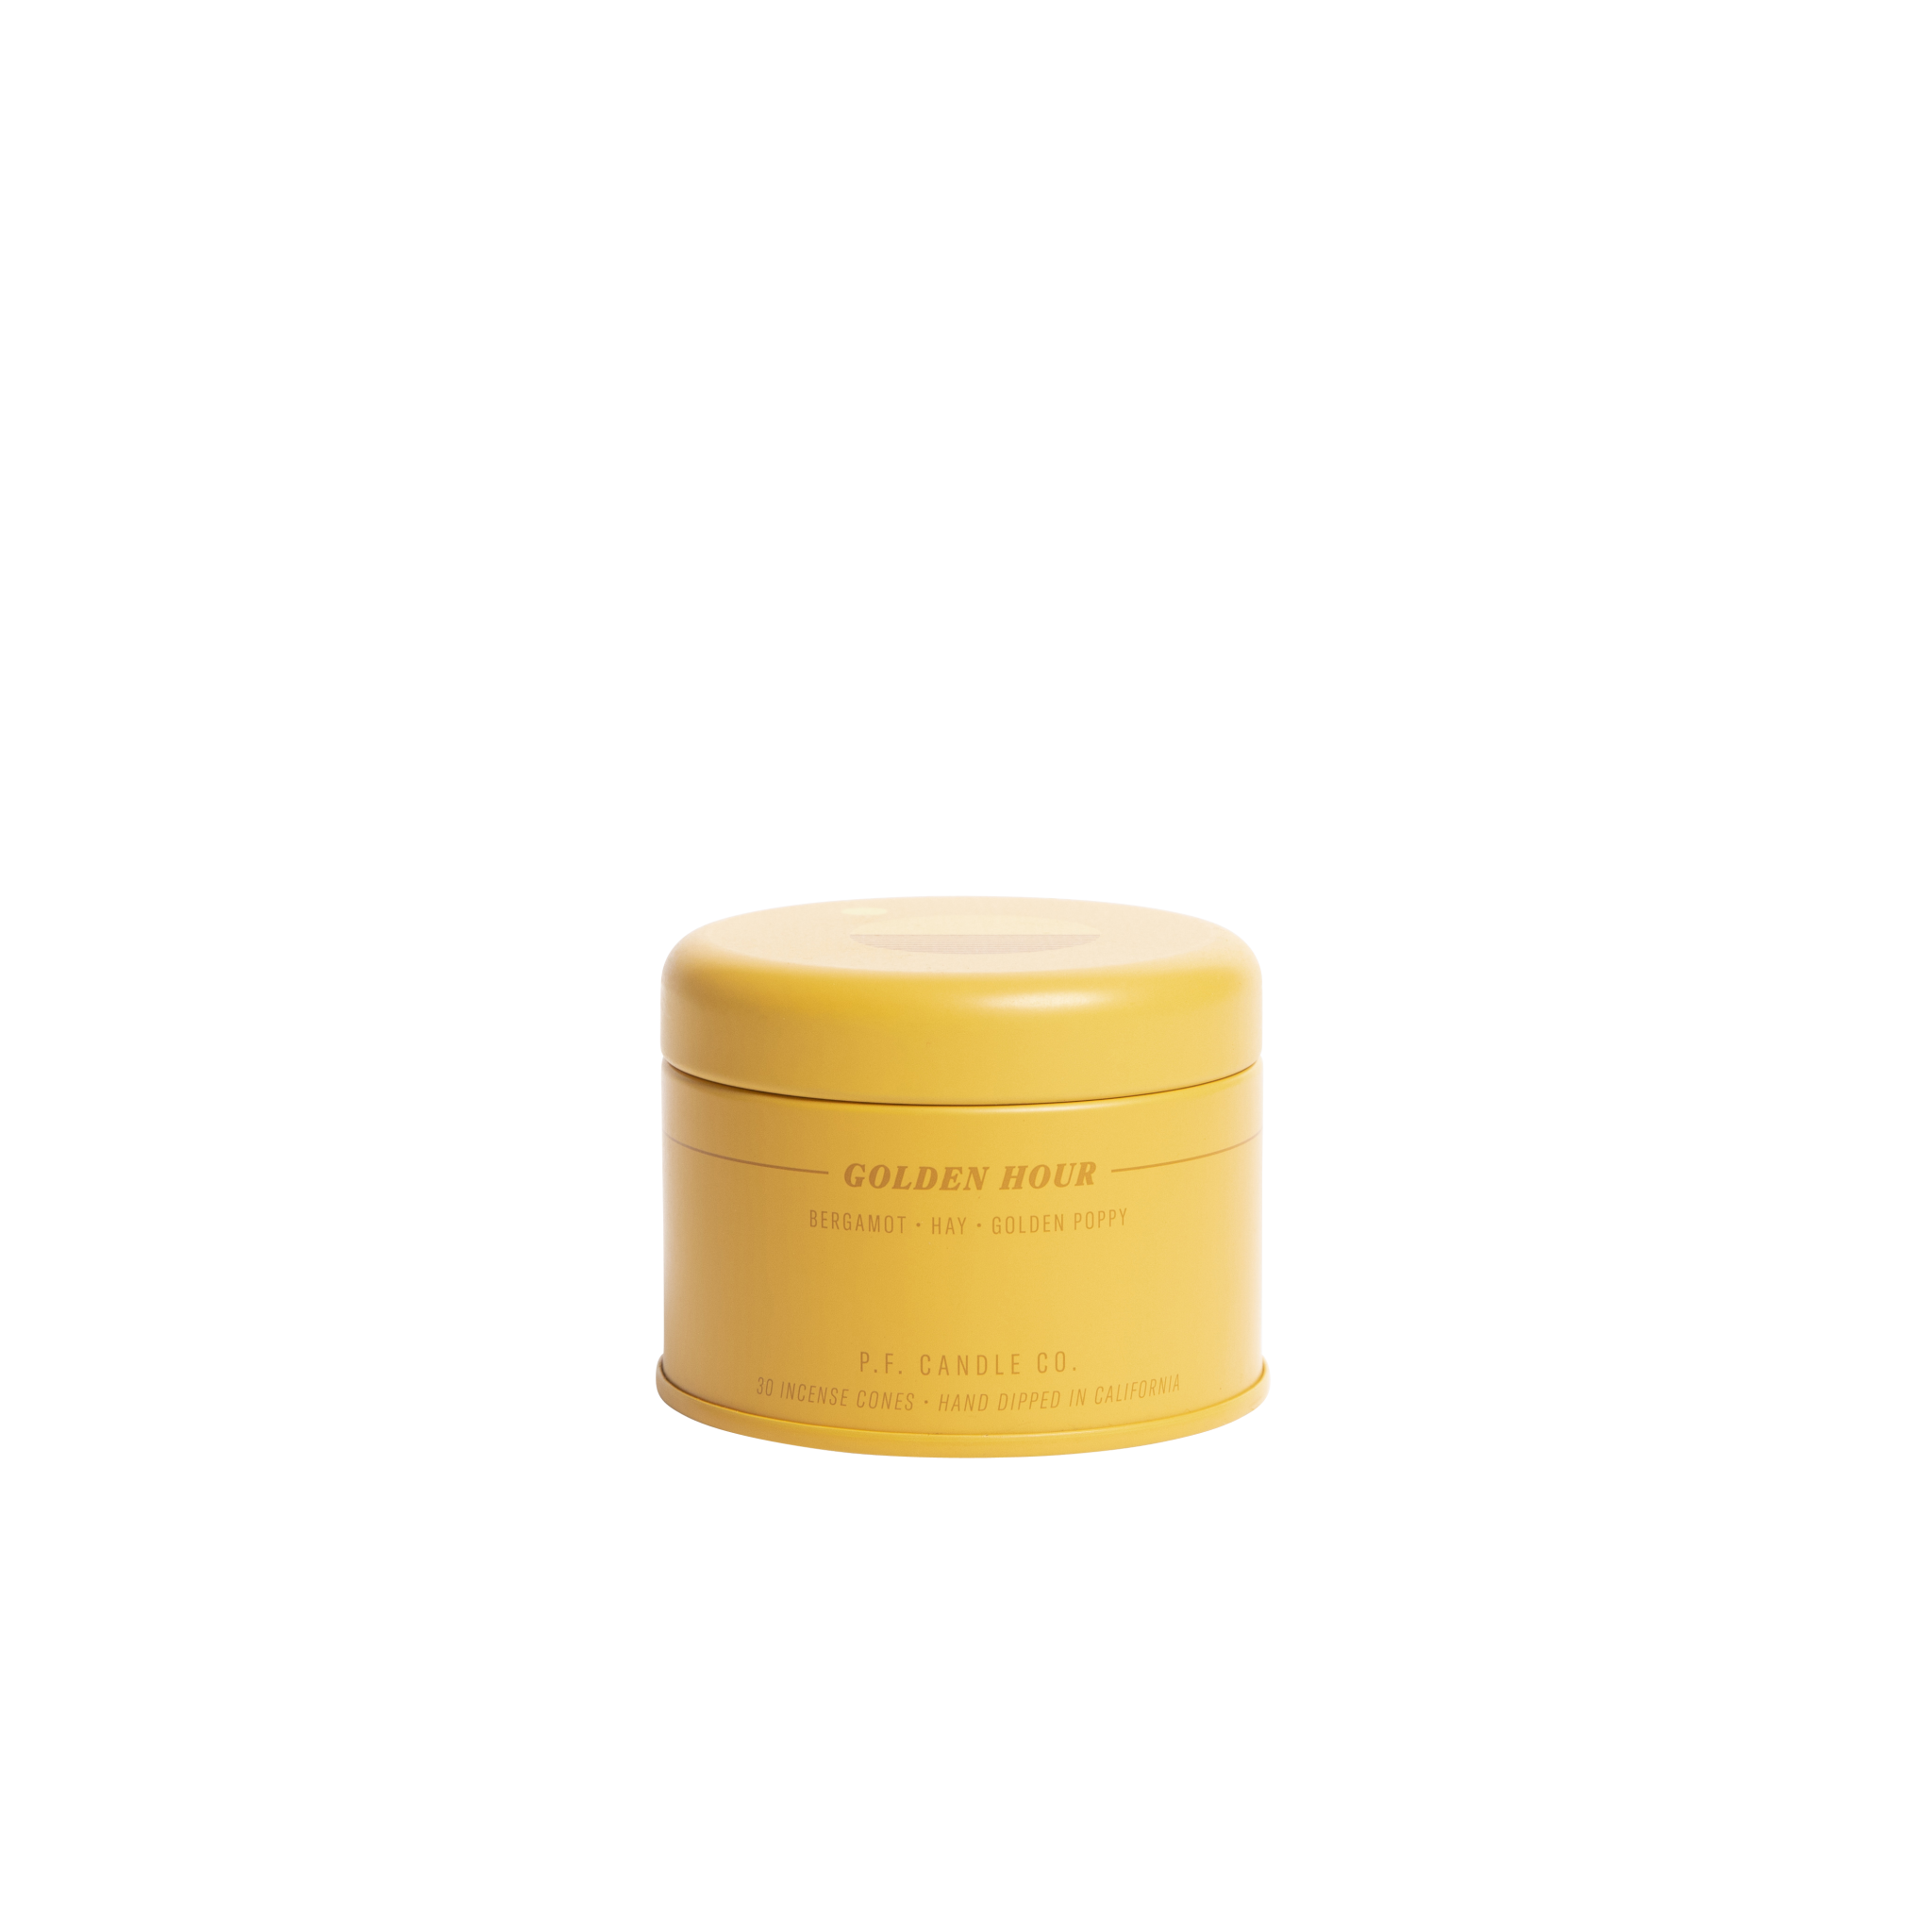 P.F.Candle golden hour - SUNSET INCENSE CONES